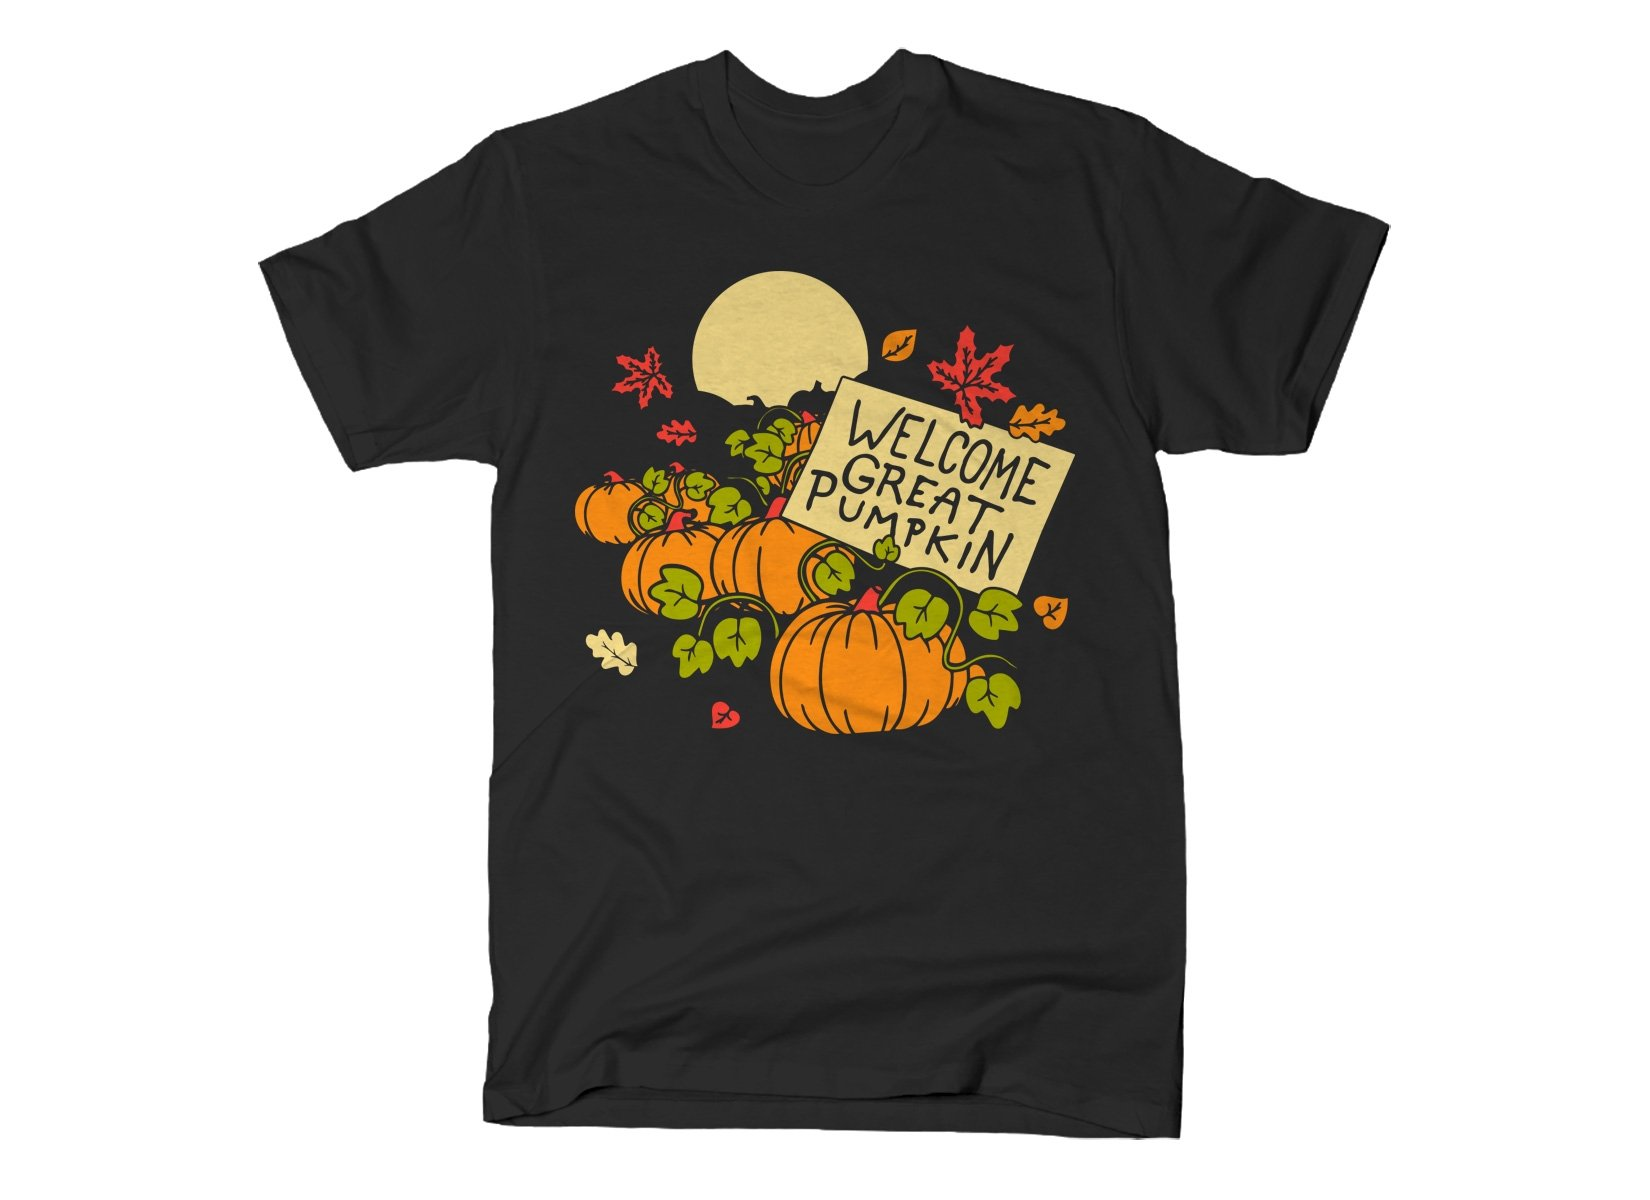 Welcome Great Pumpkin on Mens T-Shirt